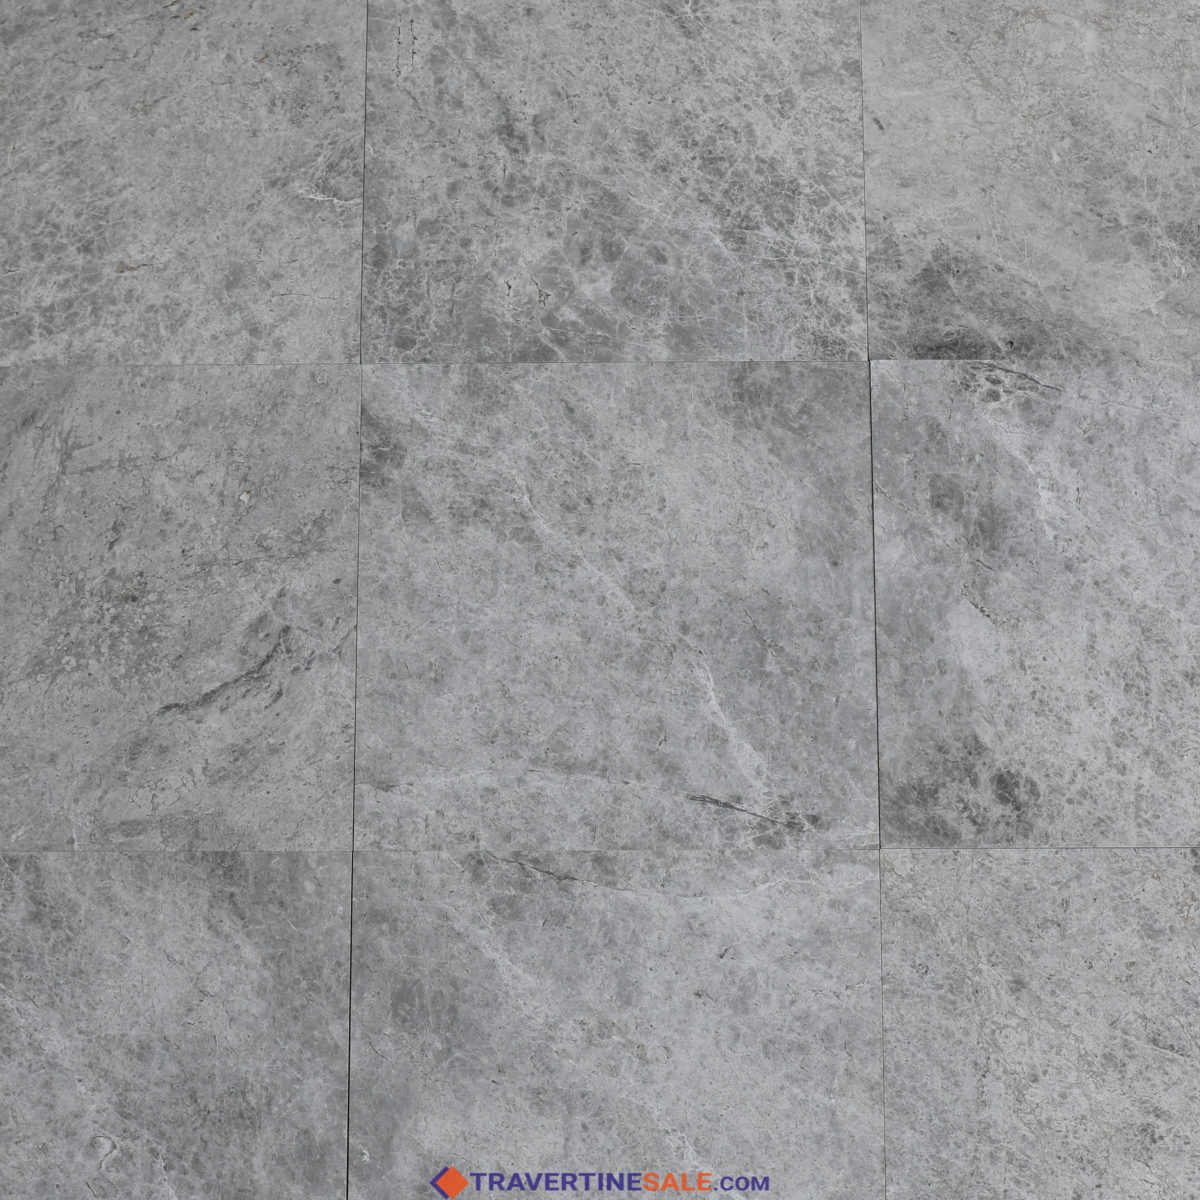 polished tundra light gray marble tiles surface with grey and silver colors